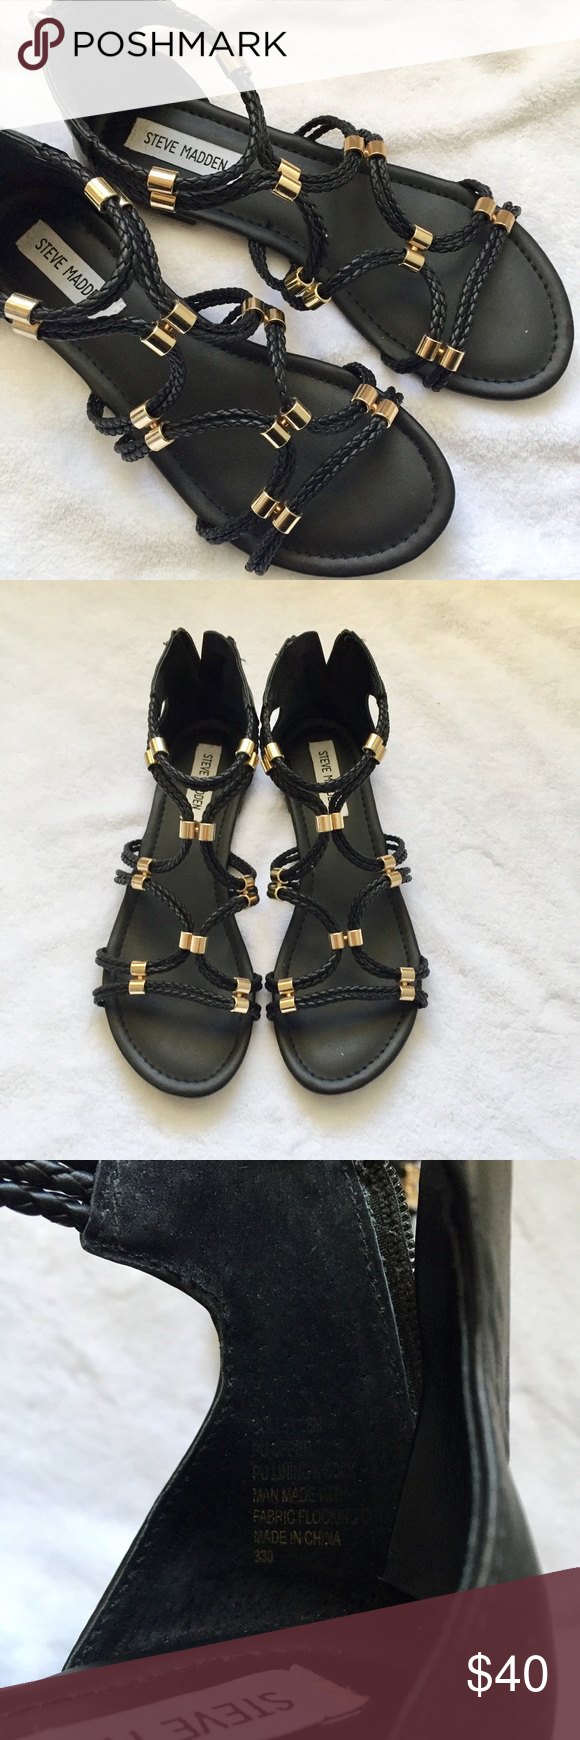 Steve Madden NWOT Black and Gold Flat Sandals Get ready for warmer weather with these super cute, brand new, never worn sandals! Ask if you have any questions! Steve Madden Shoes Sandals